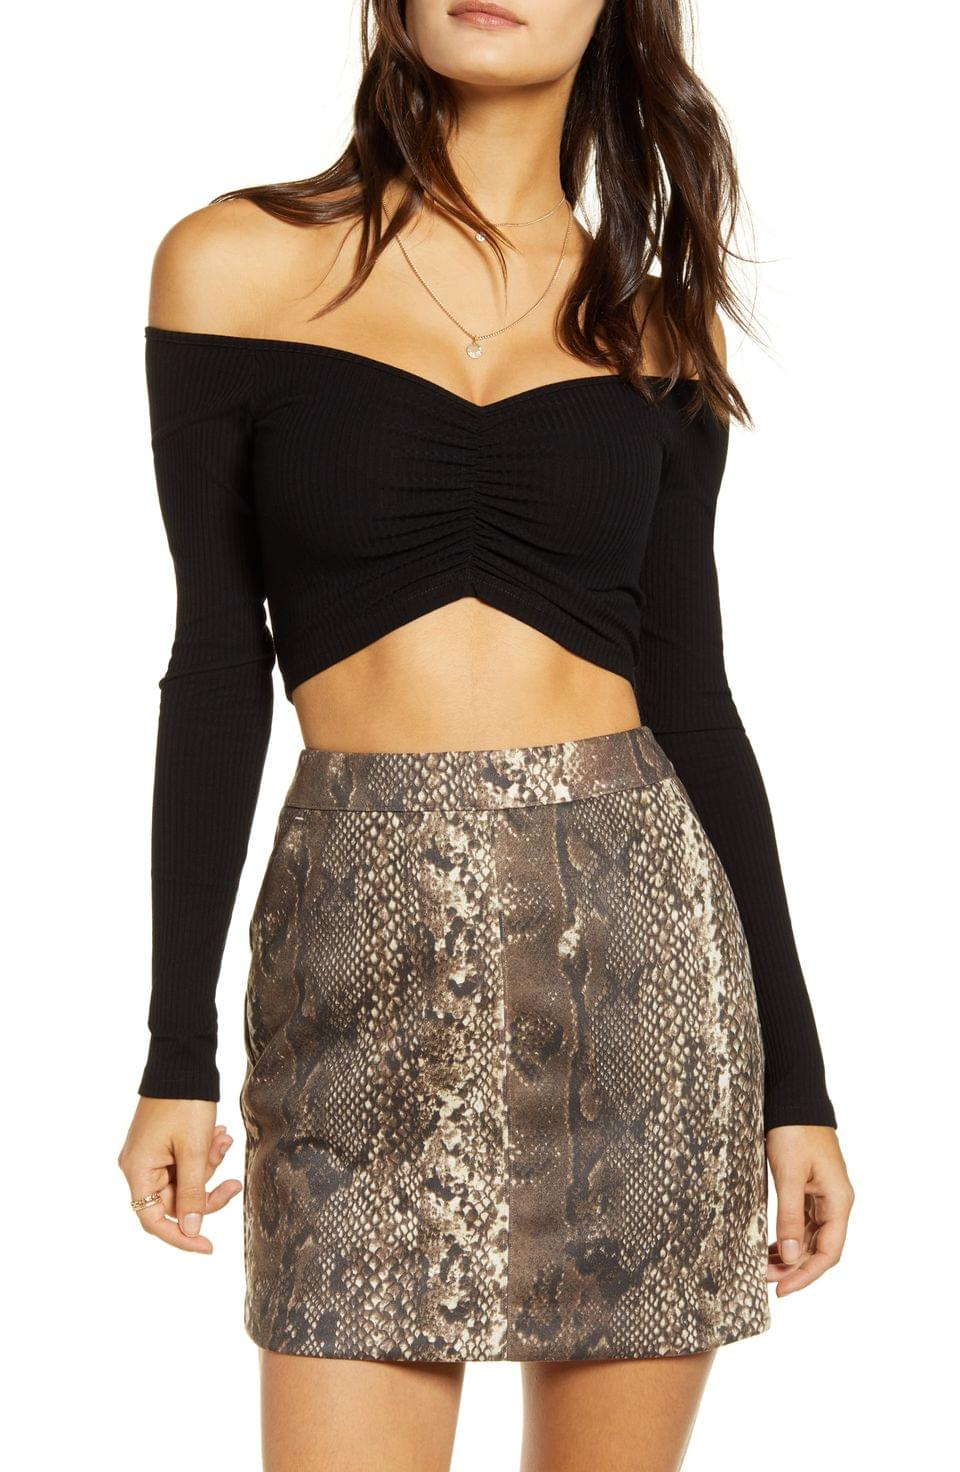 Women's Tiger Mist Sweetheart Off the Shoulder Long Sleeve Stretch Cotton Crop Top